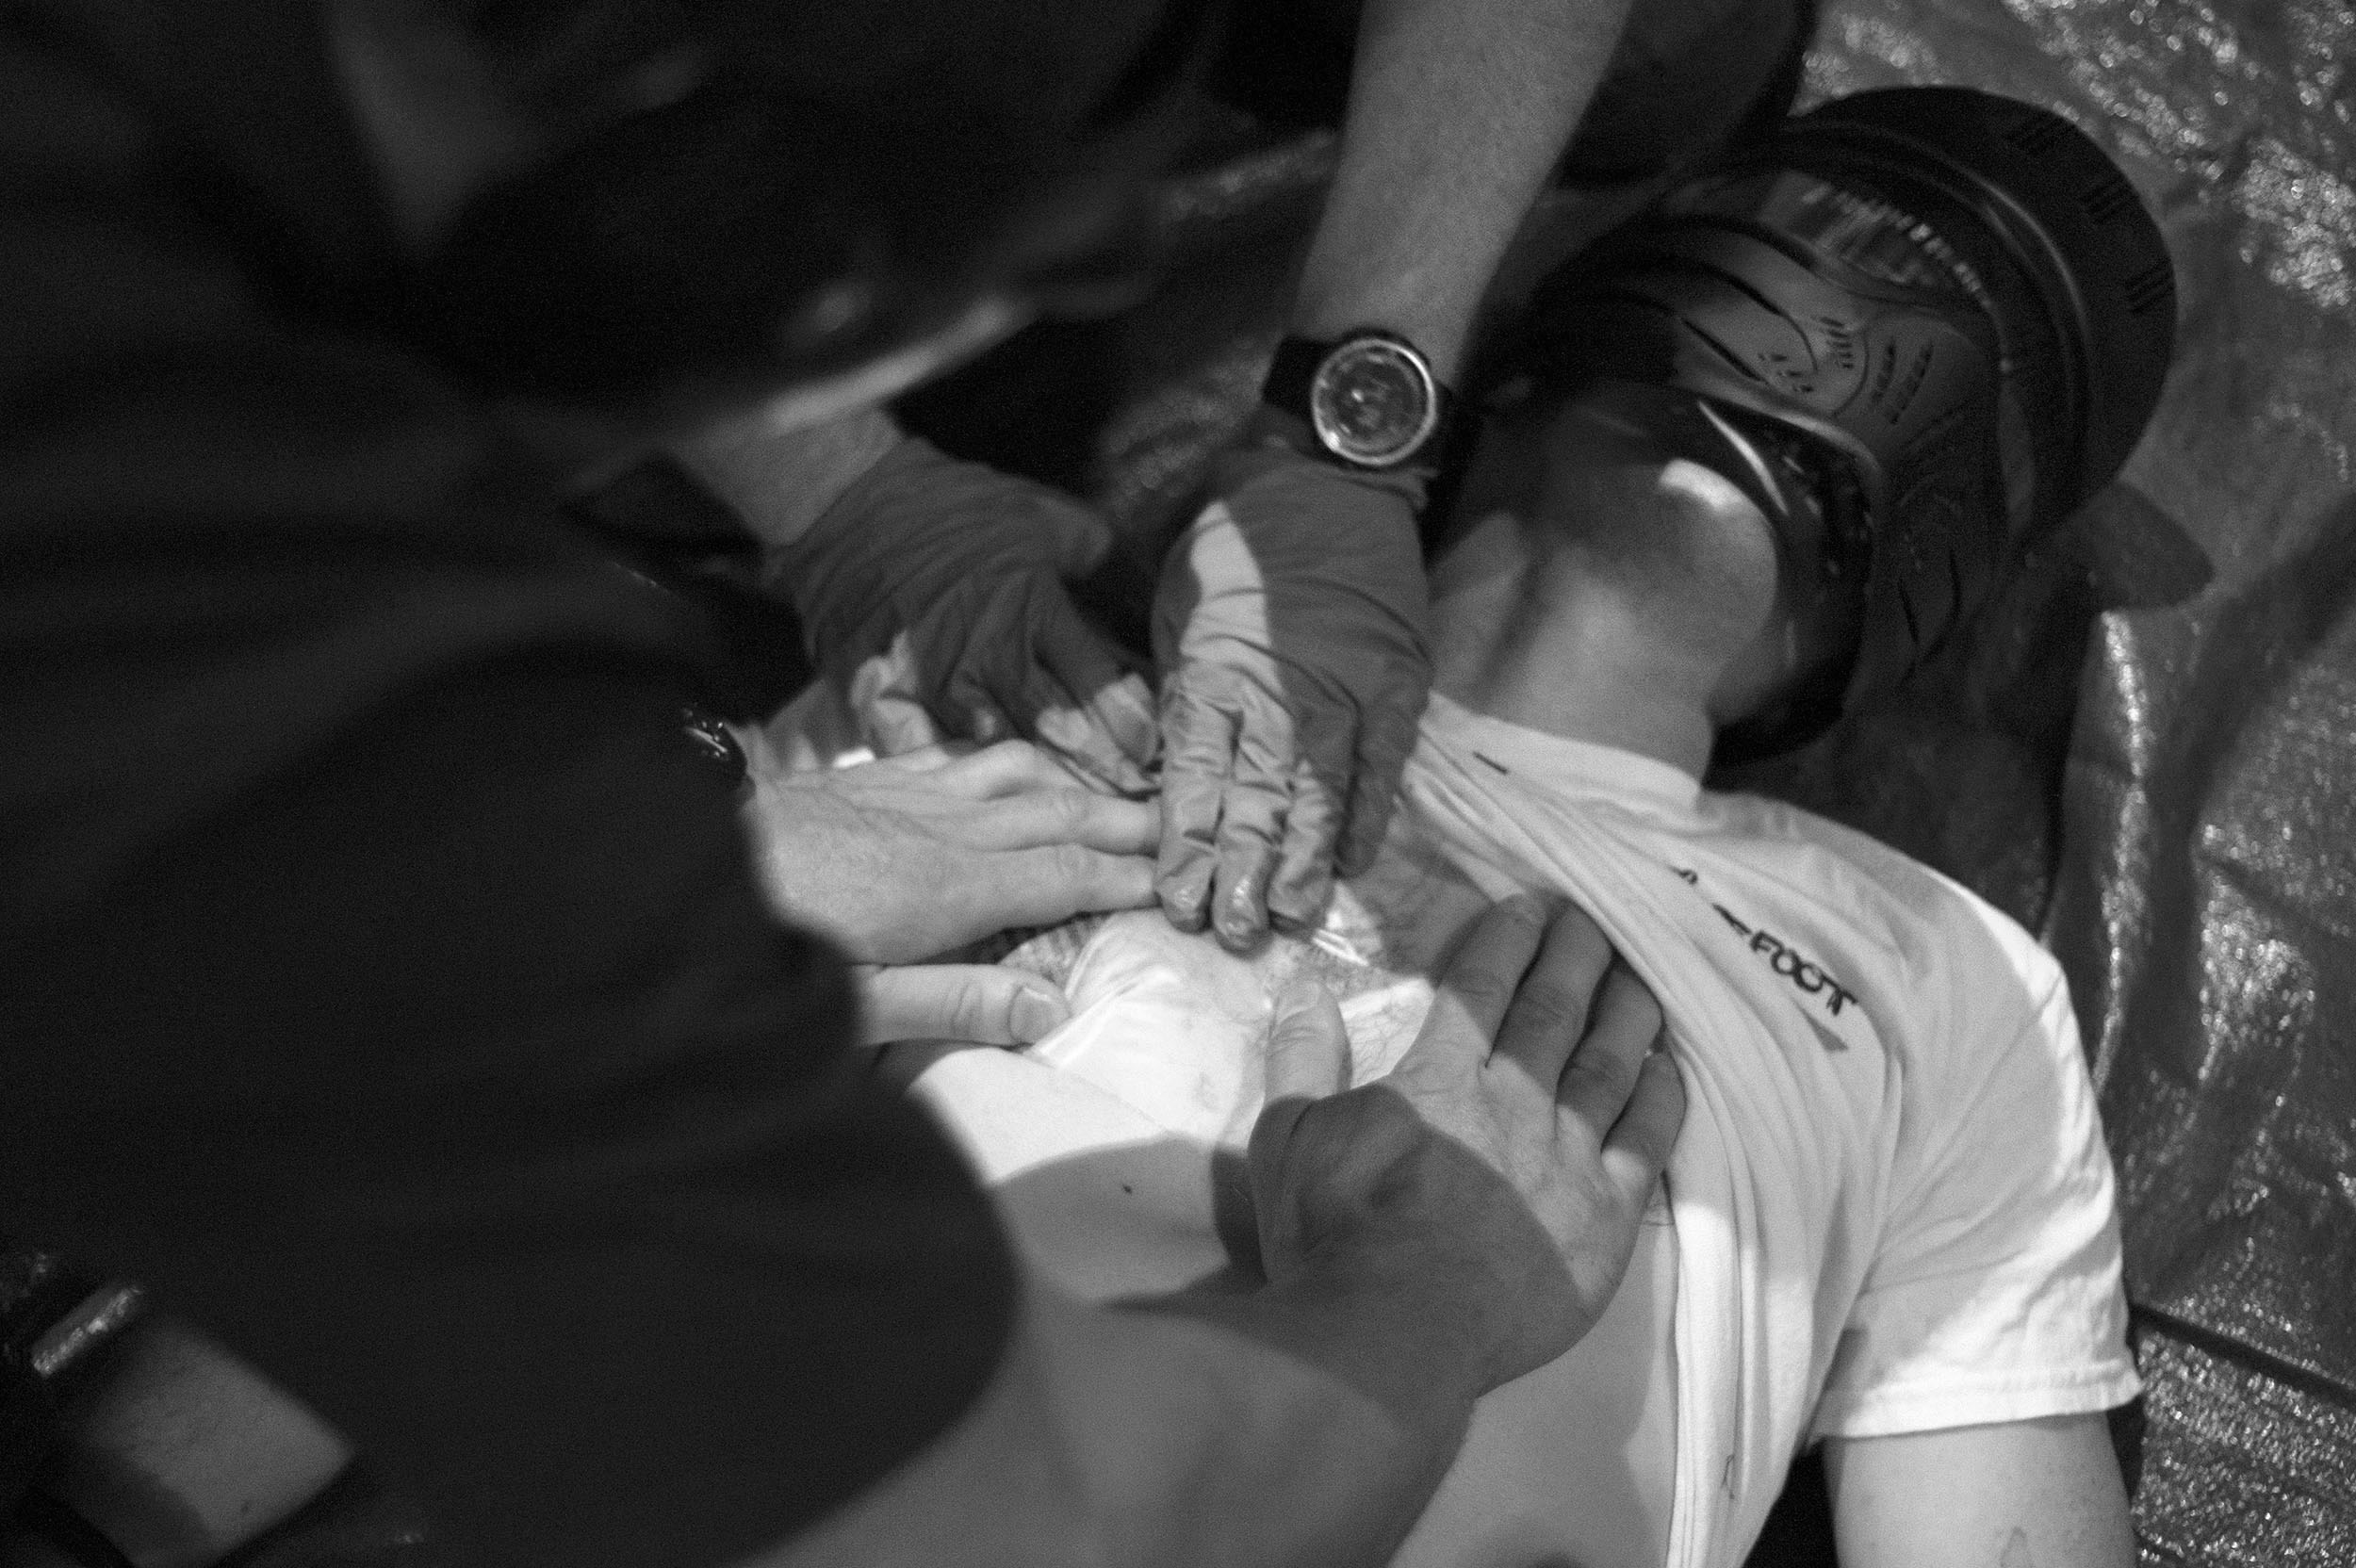 Paramedics demonstrate gunshot trauma treatment in a course aimed at students and teachers.